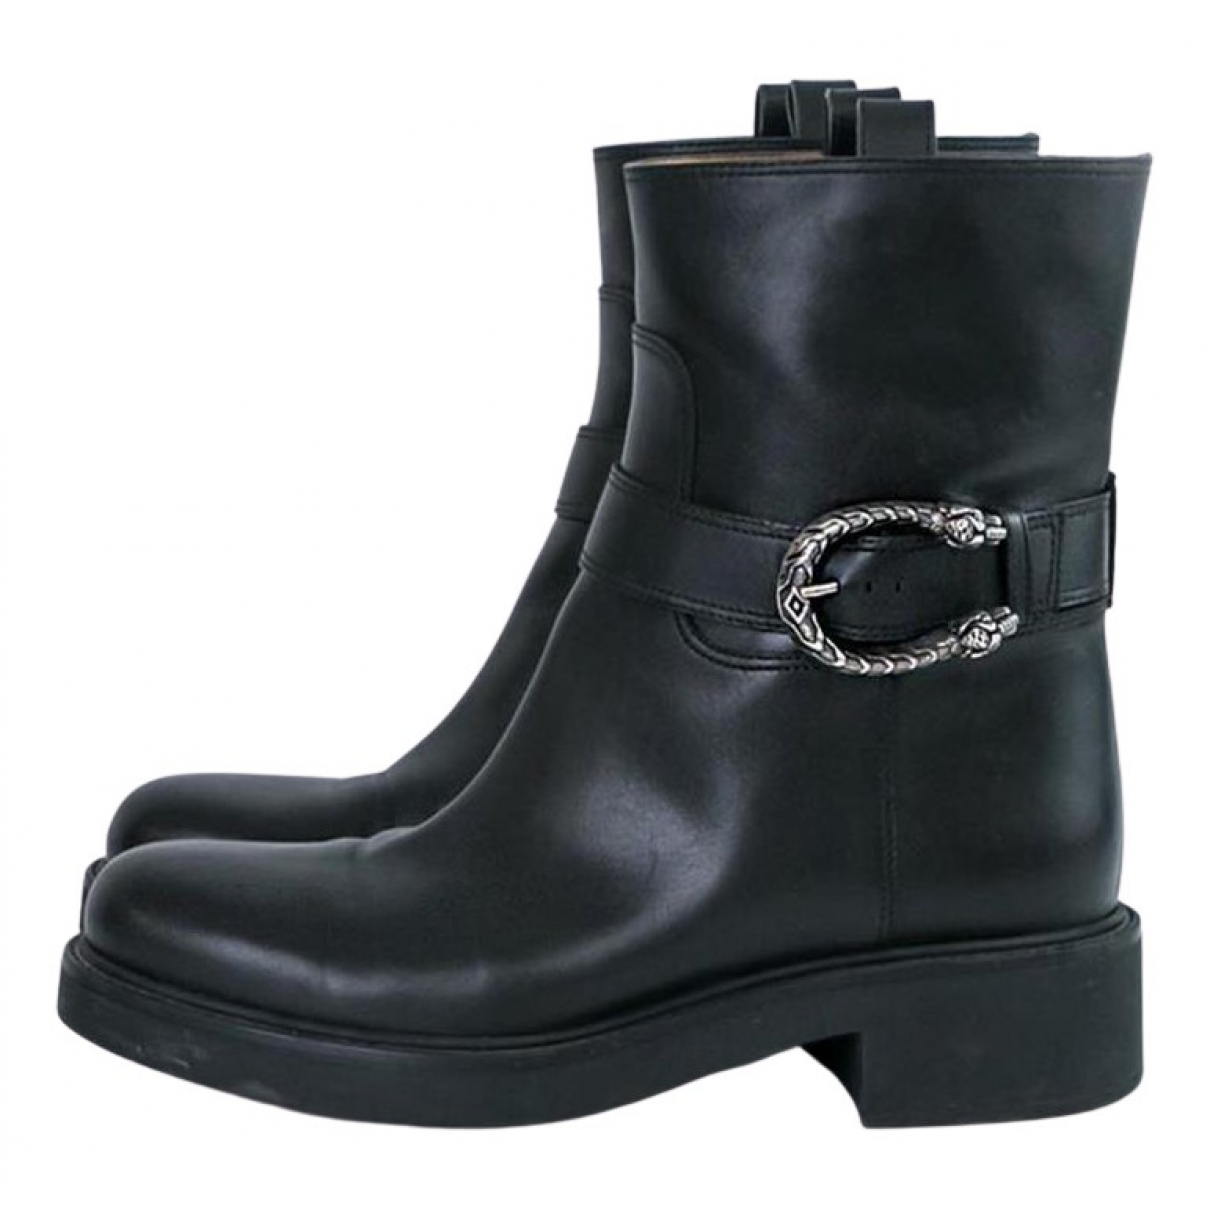 Gucci N Black Leather Ankle boots for Women 38.5 EU